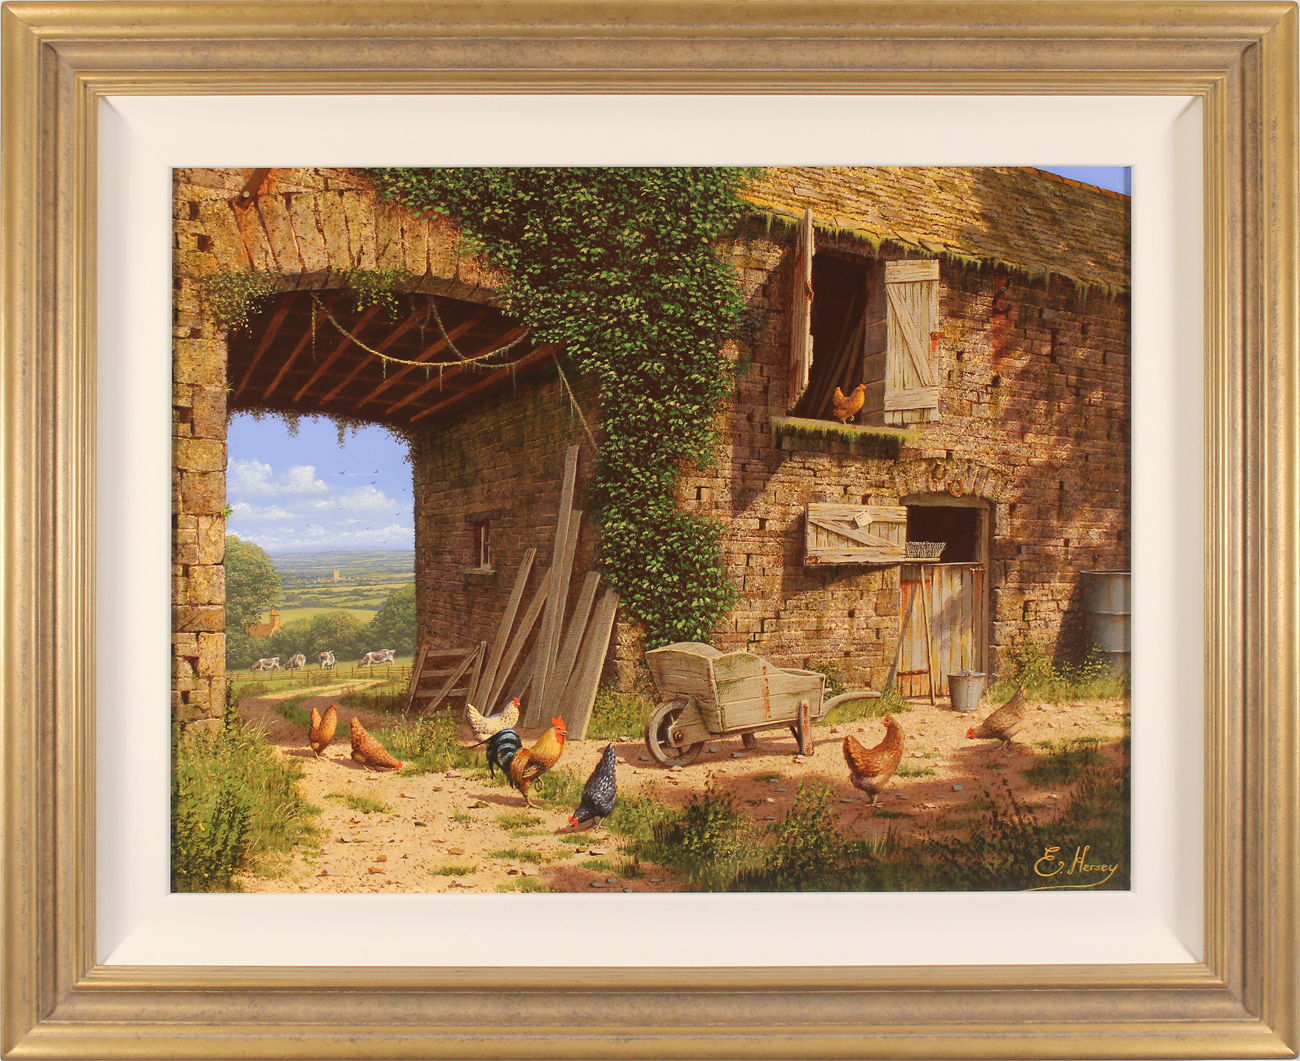 Edward Hersey, Original oil painting on canvas, Farmyard Bustle, North Yorkshire. Click to enlarge